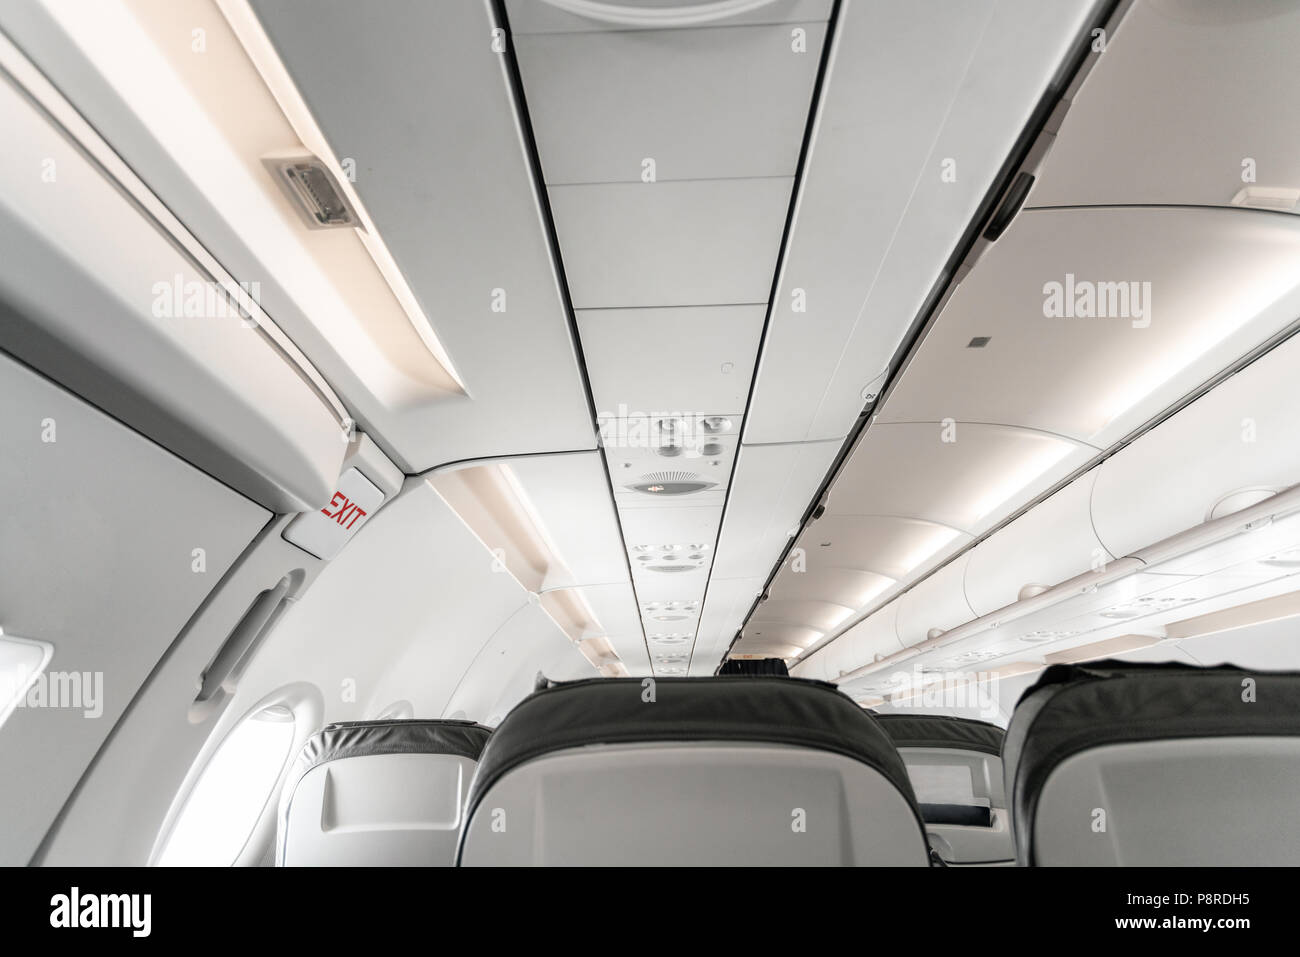 Emergency exit on an aircraft, view from inside of the plane. Empty airplane seats in the cabin. Modern Transportation concept. Aircraft long-distance international flight - Stock Image